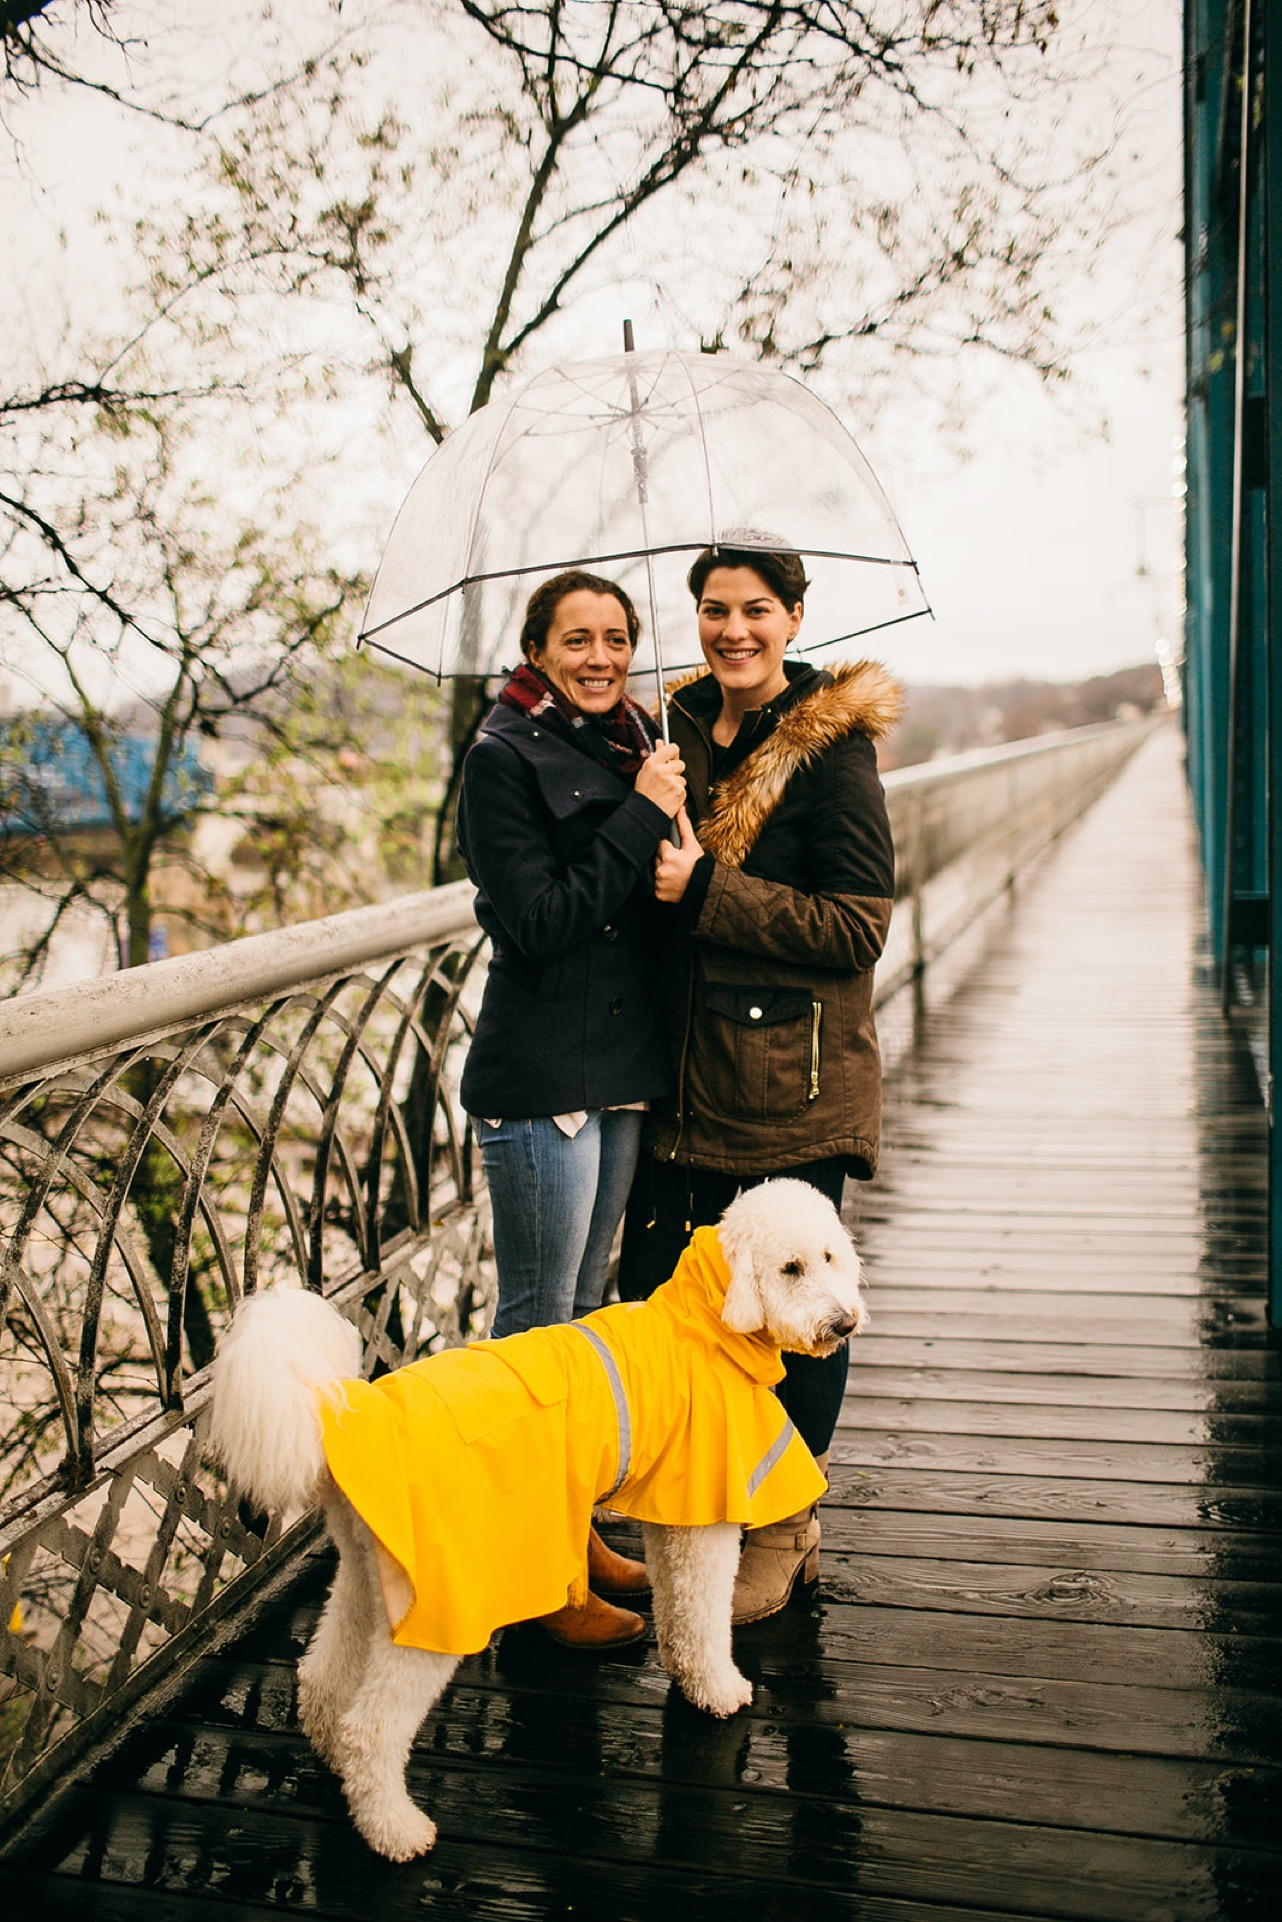 An engaged lesbian couple poses under a clear umbrella on the Walking Bridge in Chattanooga. Their white goldendoodle stands next to them in a yellow raincoat.